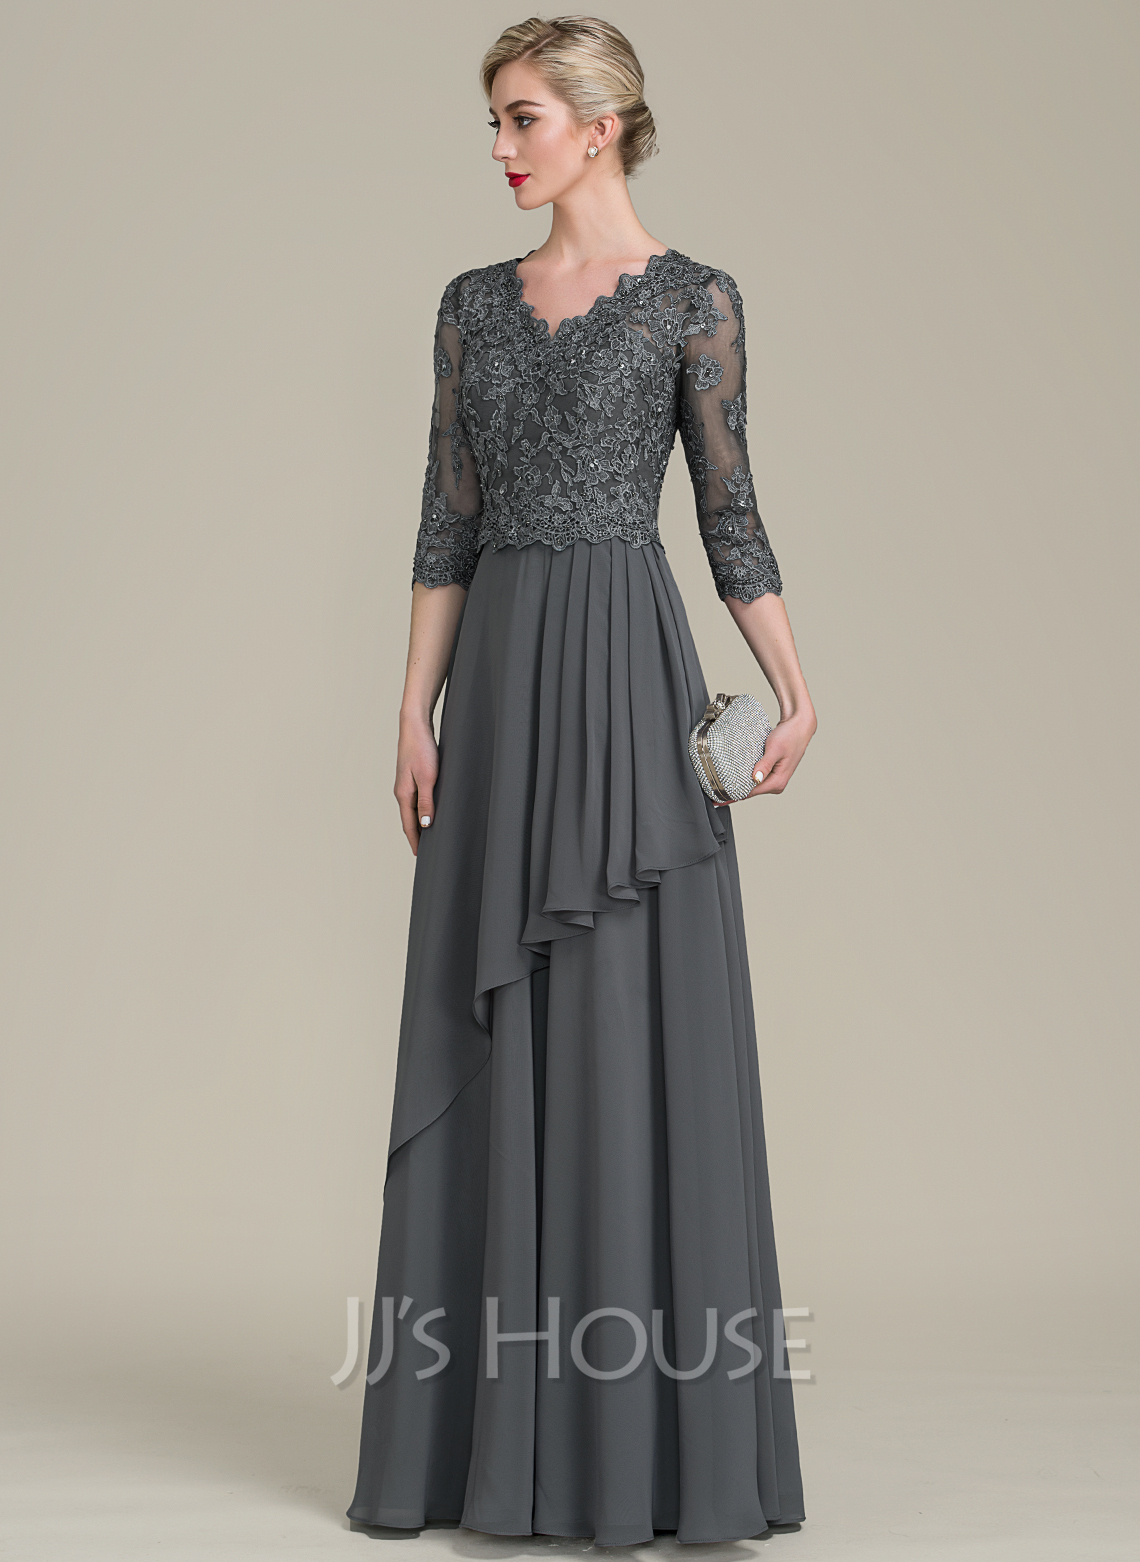 A-Line V-neck Floor-Length Chiffon Lace Mother of the Bride Dress With Beading Sequins Cascading Ruffles